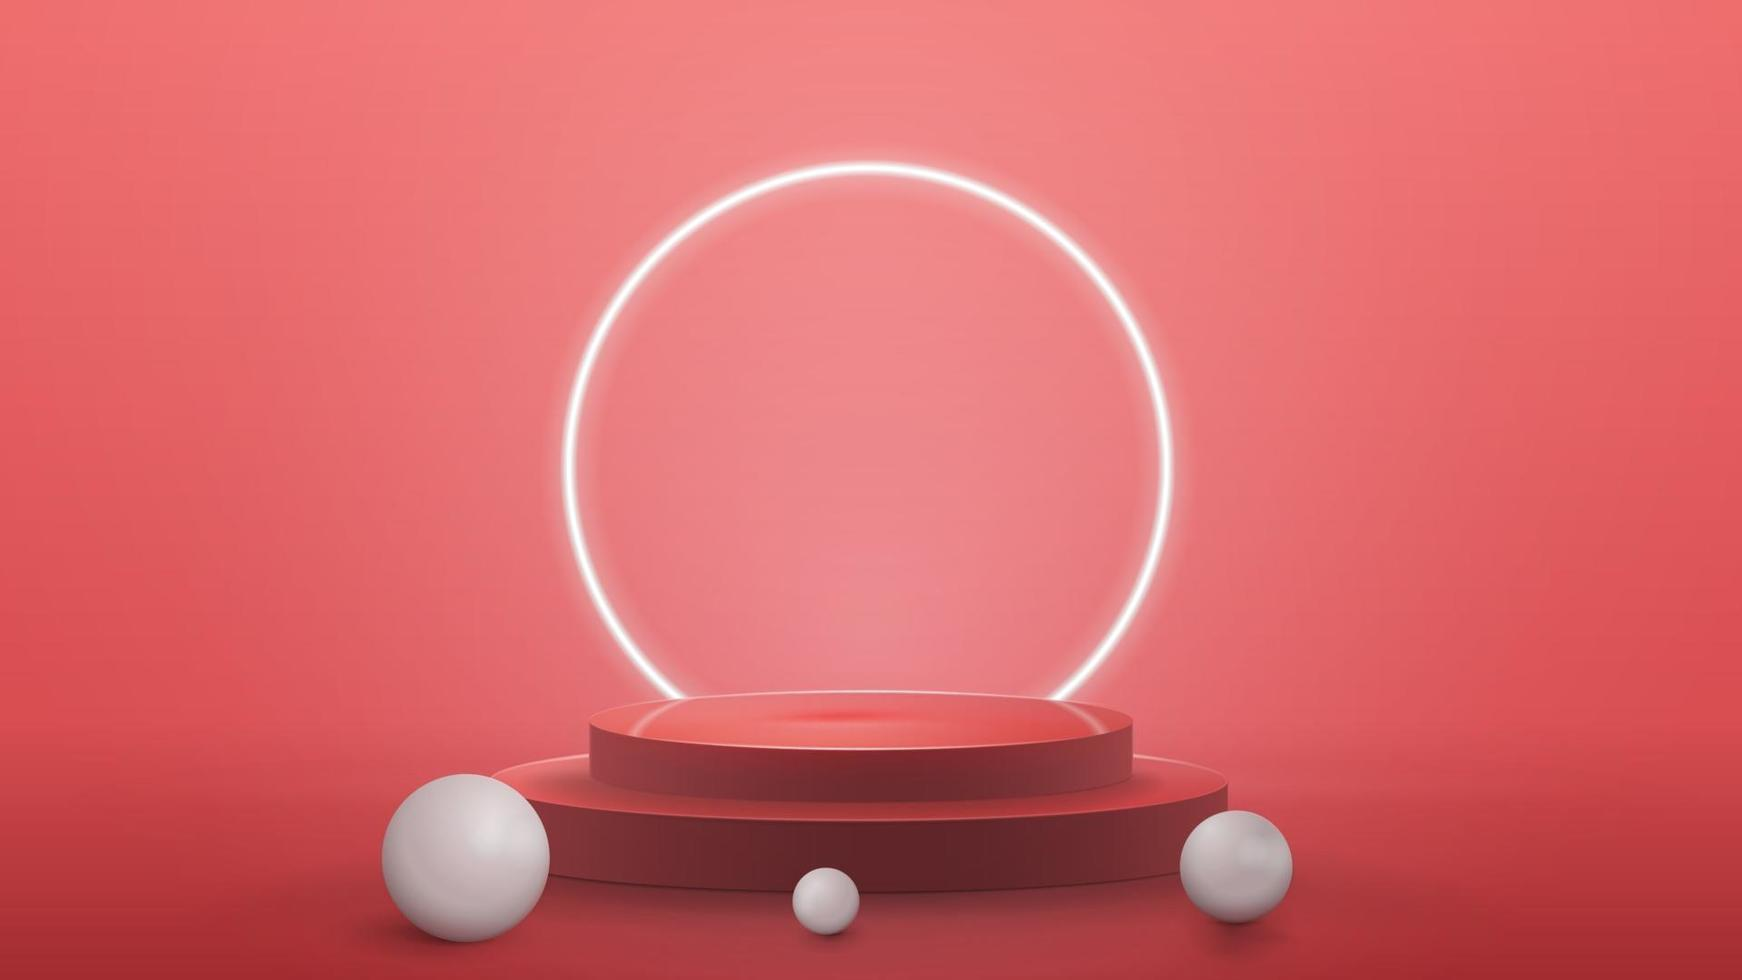 Empty podium with realistic spheres and neon ring on background, realistic vector illustration. 3d render illustration with pink abstract scene with neon white ring